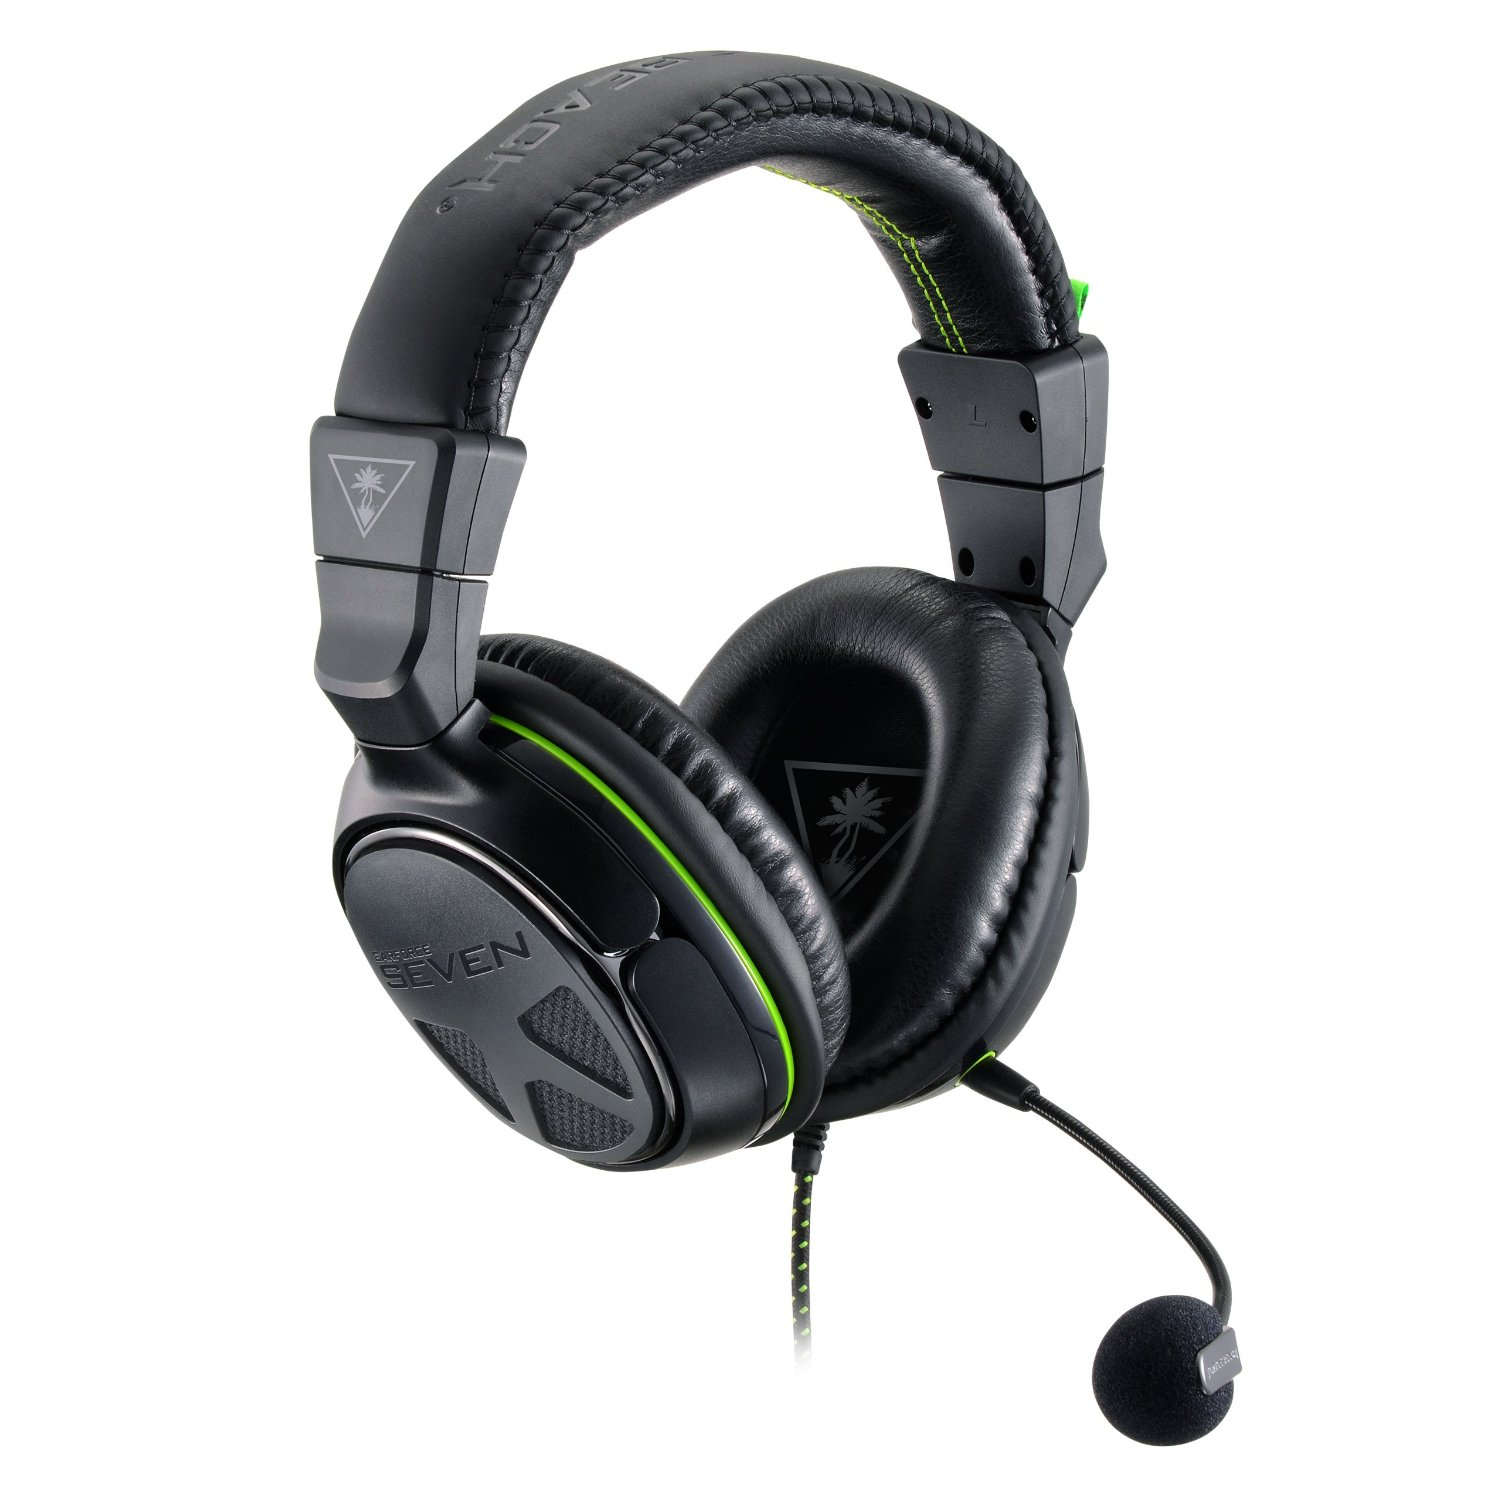 Top Headsets That Are Compatible With The XBOX One GamerBolt